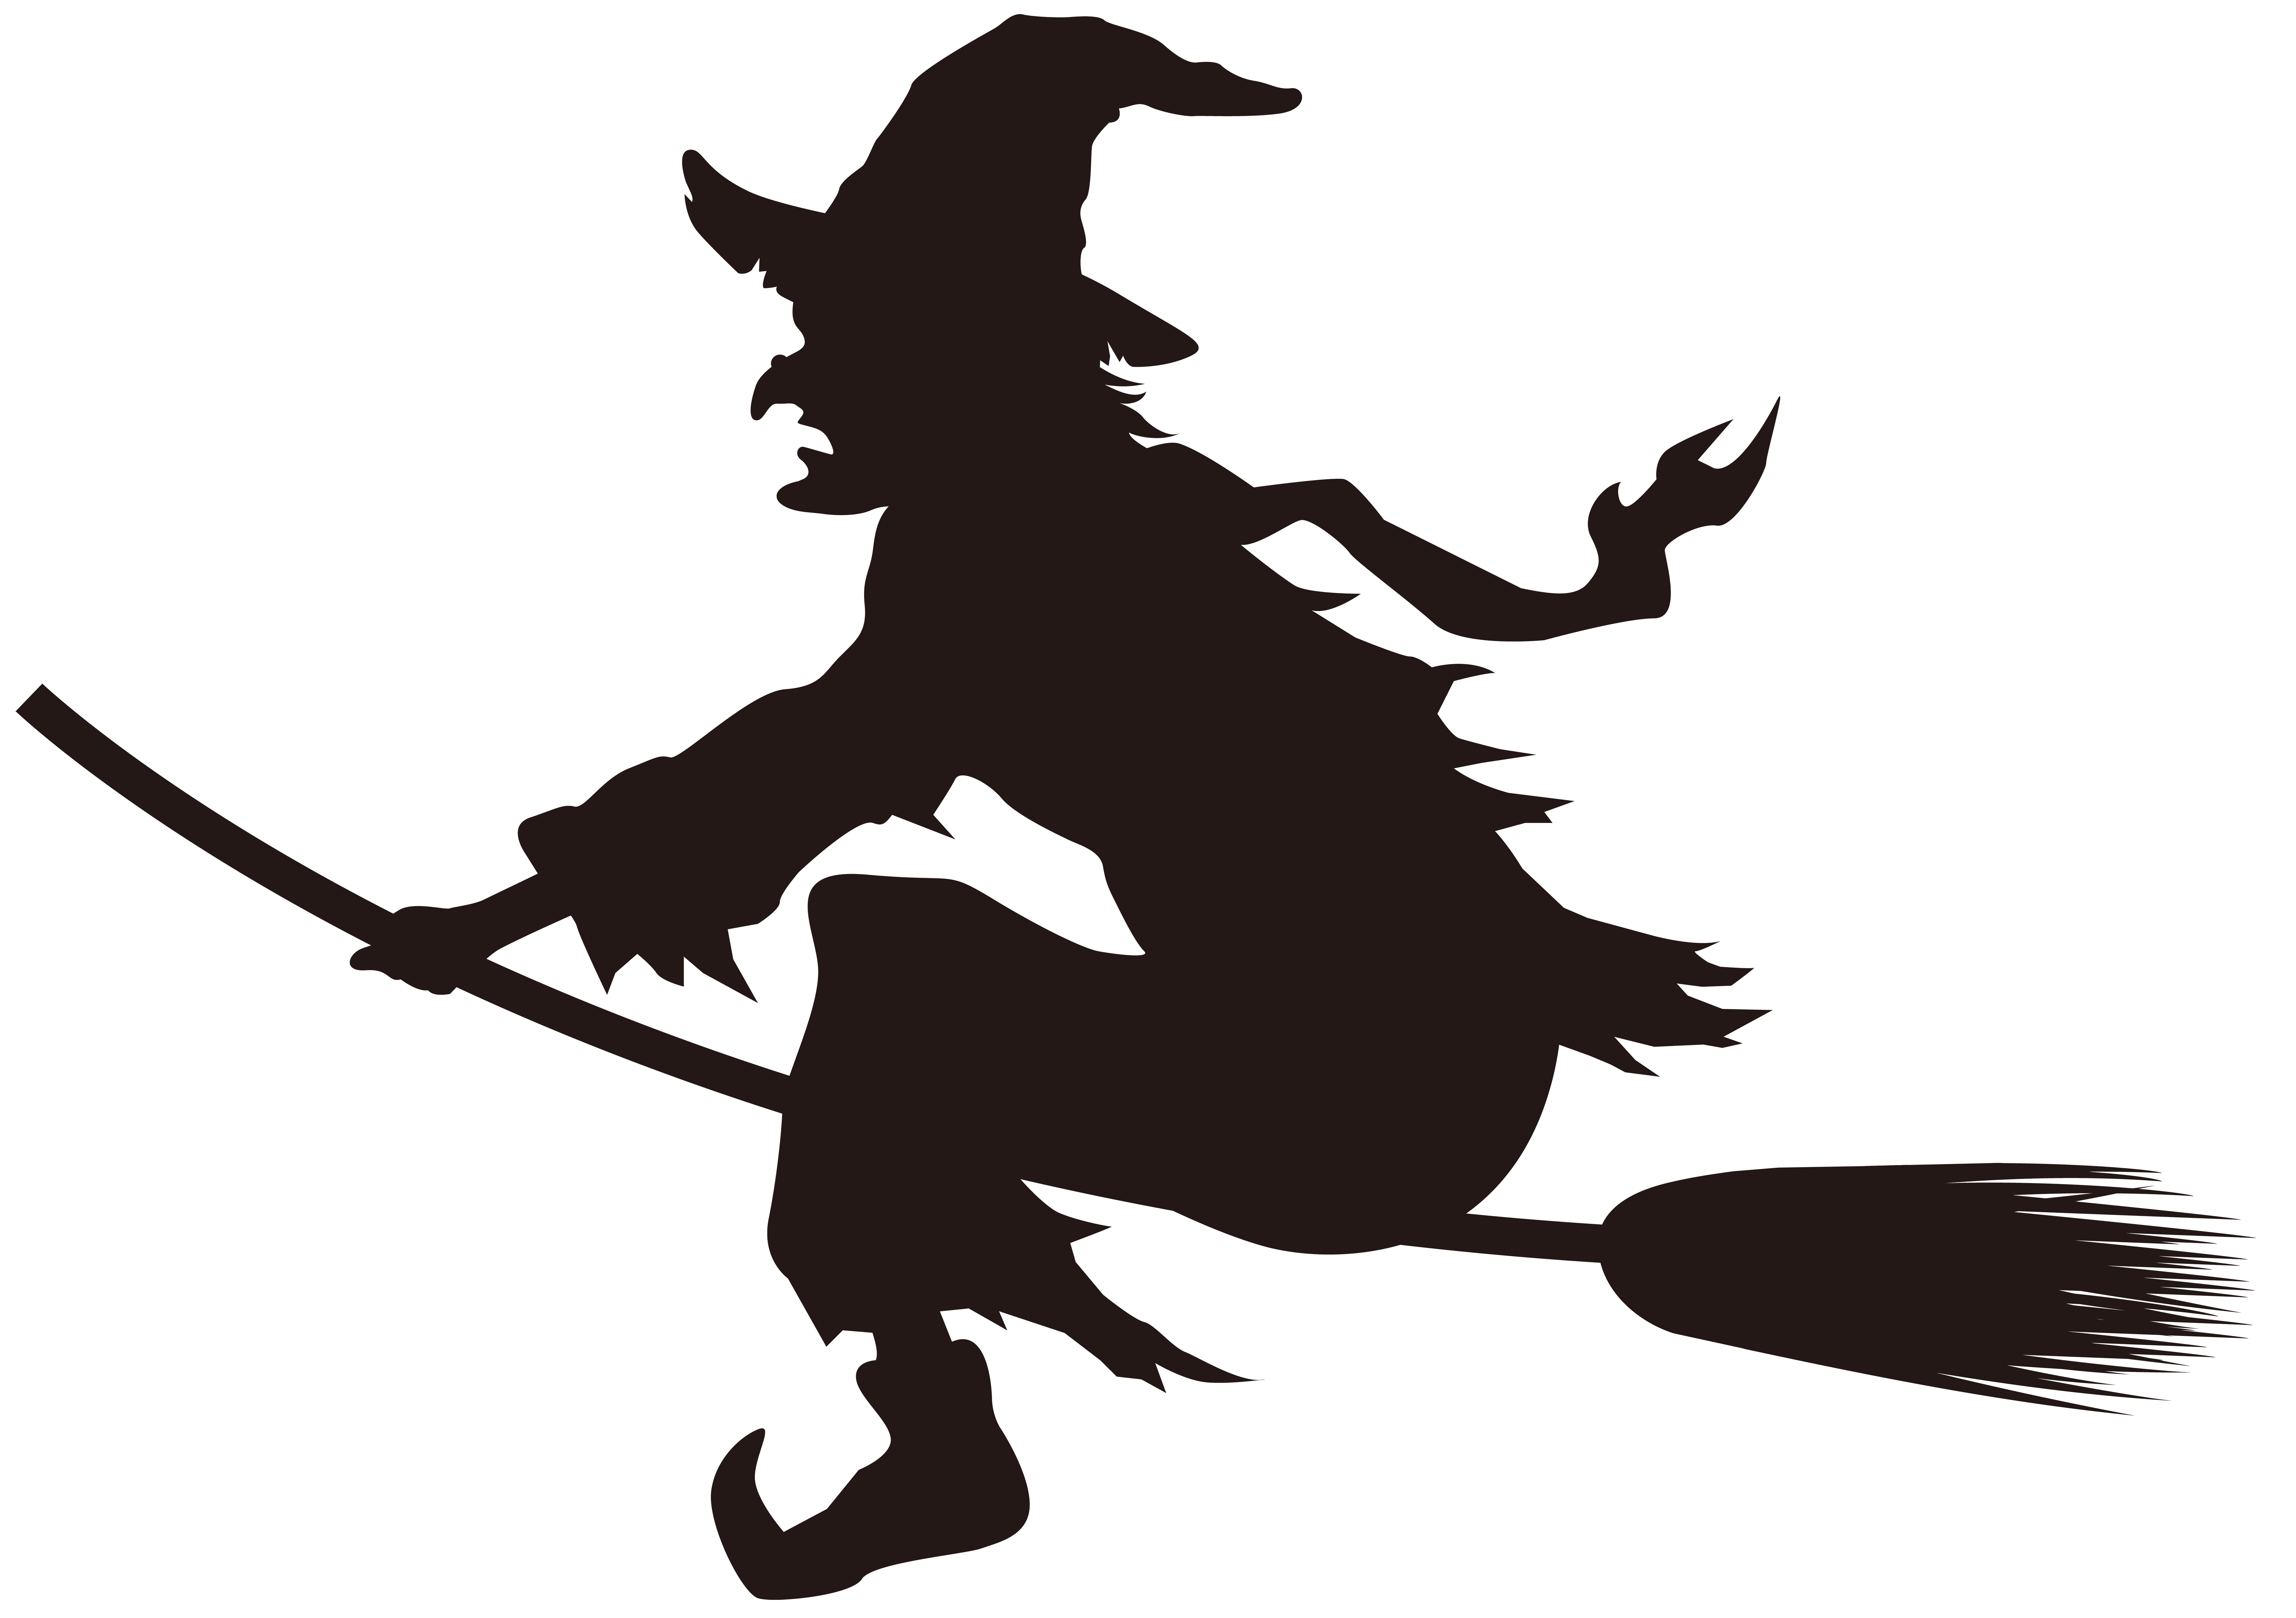 Halloween moon clipart black and white clipart royalty free stock Halloween Witch on Broom Silhouette PNG Clip Art Image | Gallery ... clipart royalty free stock